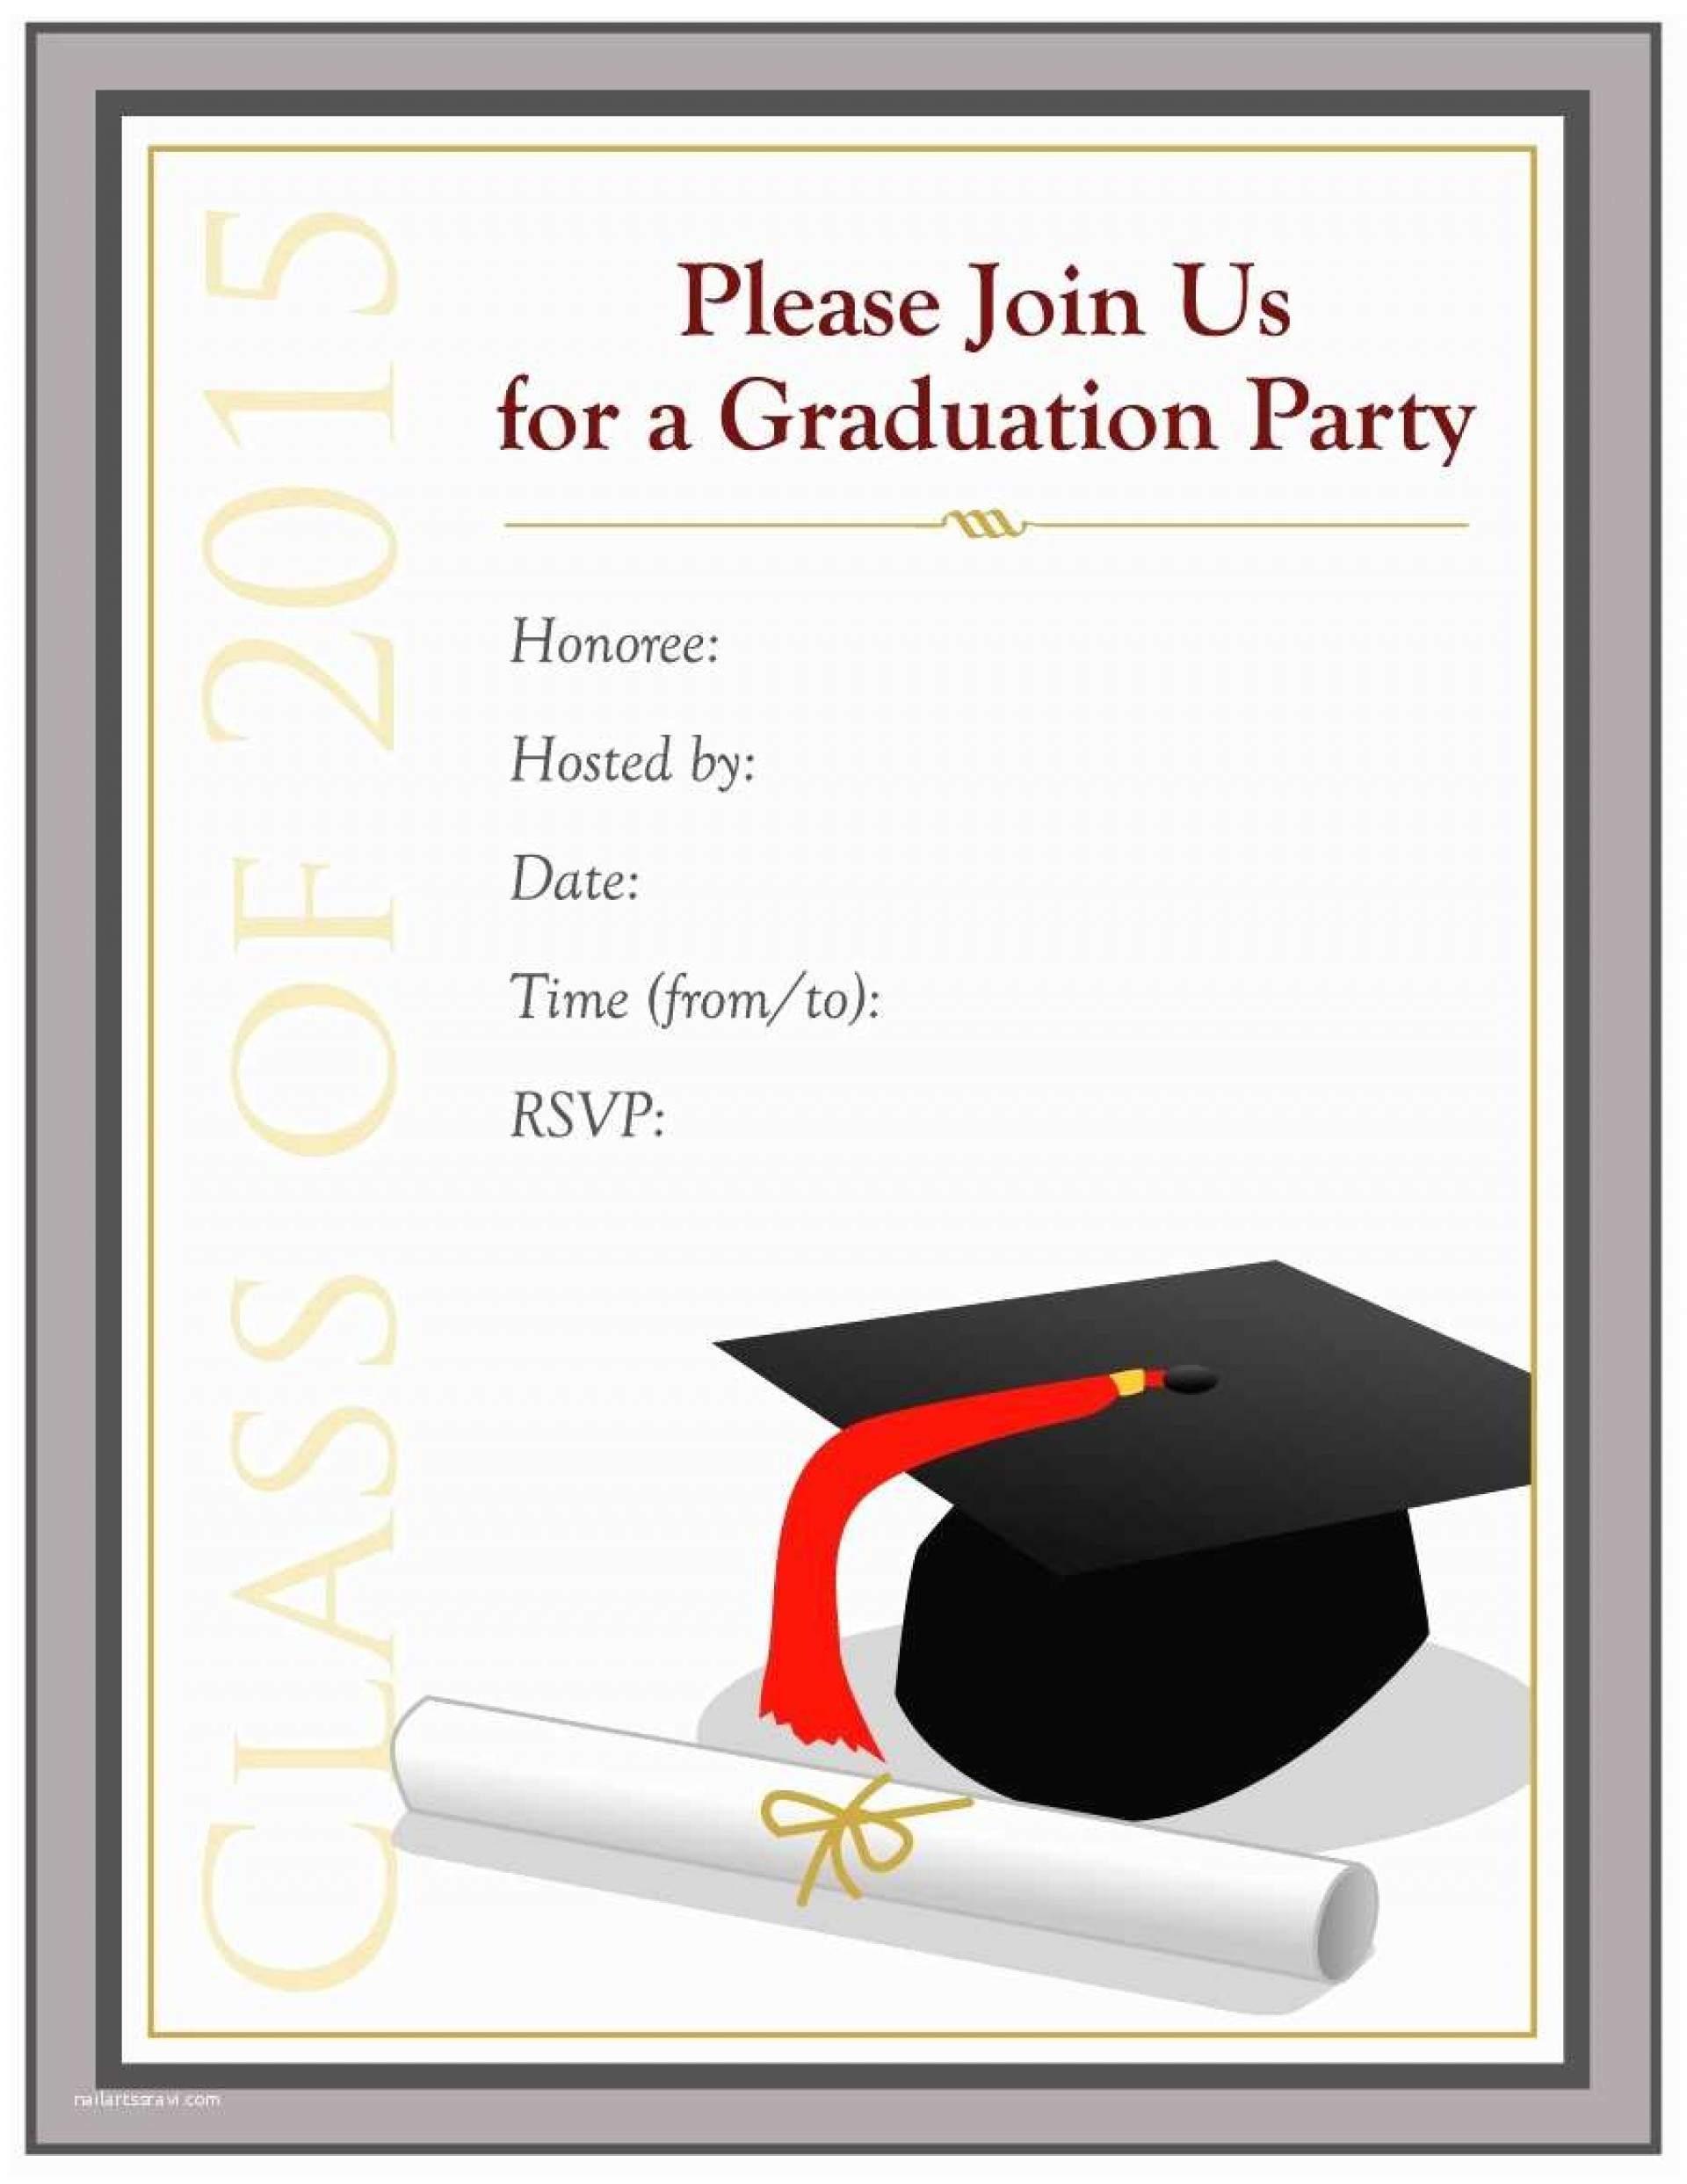 006 Awful College Graduation Invitation Template Sample  Templates Free Party1920